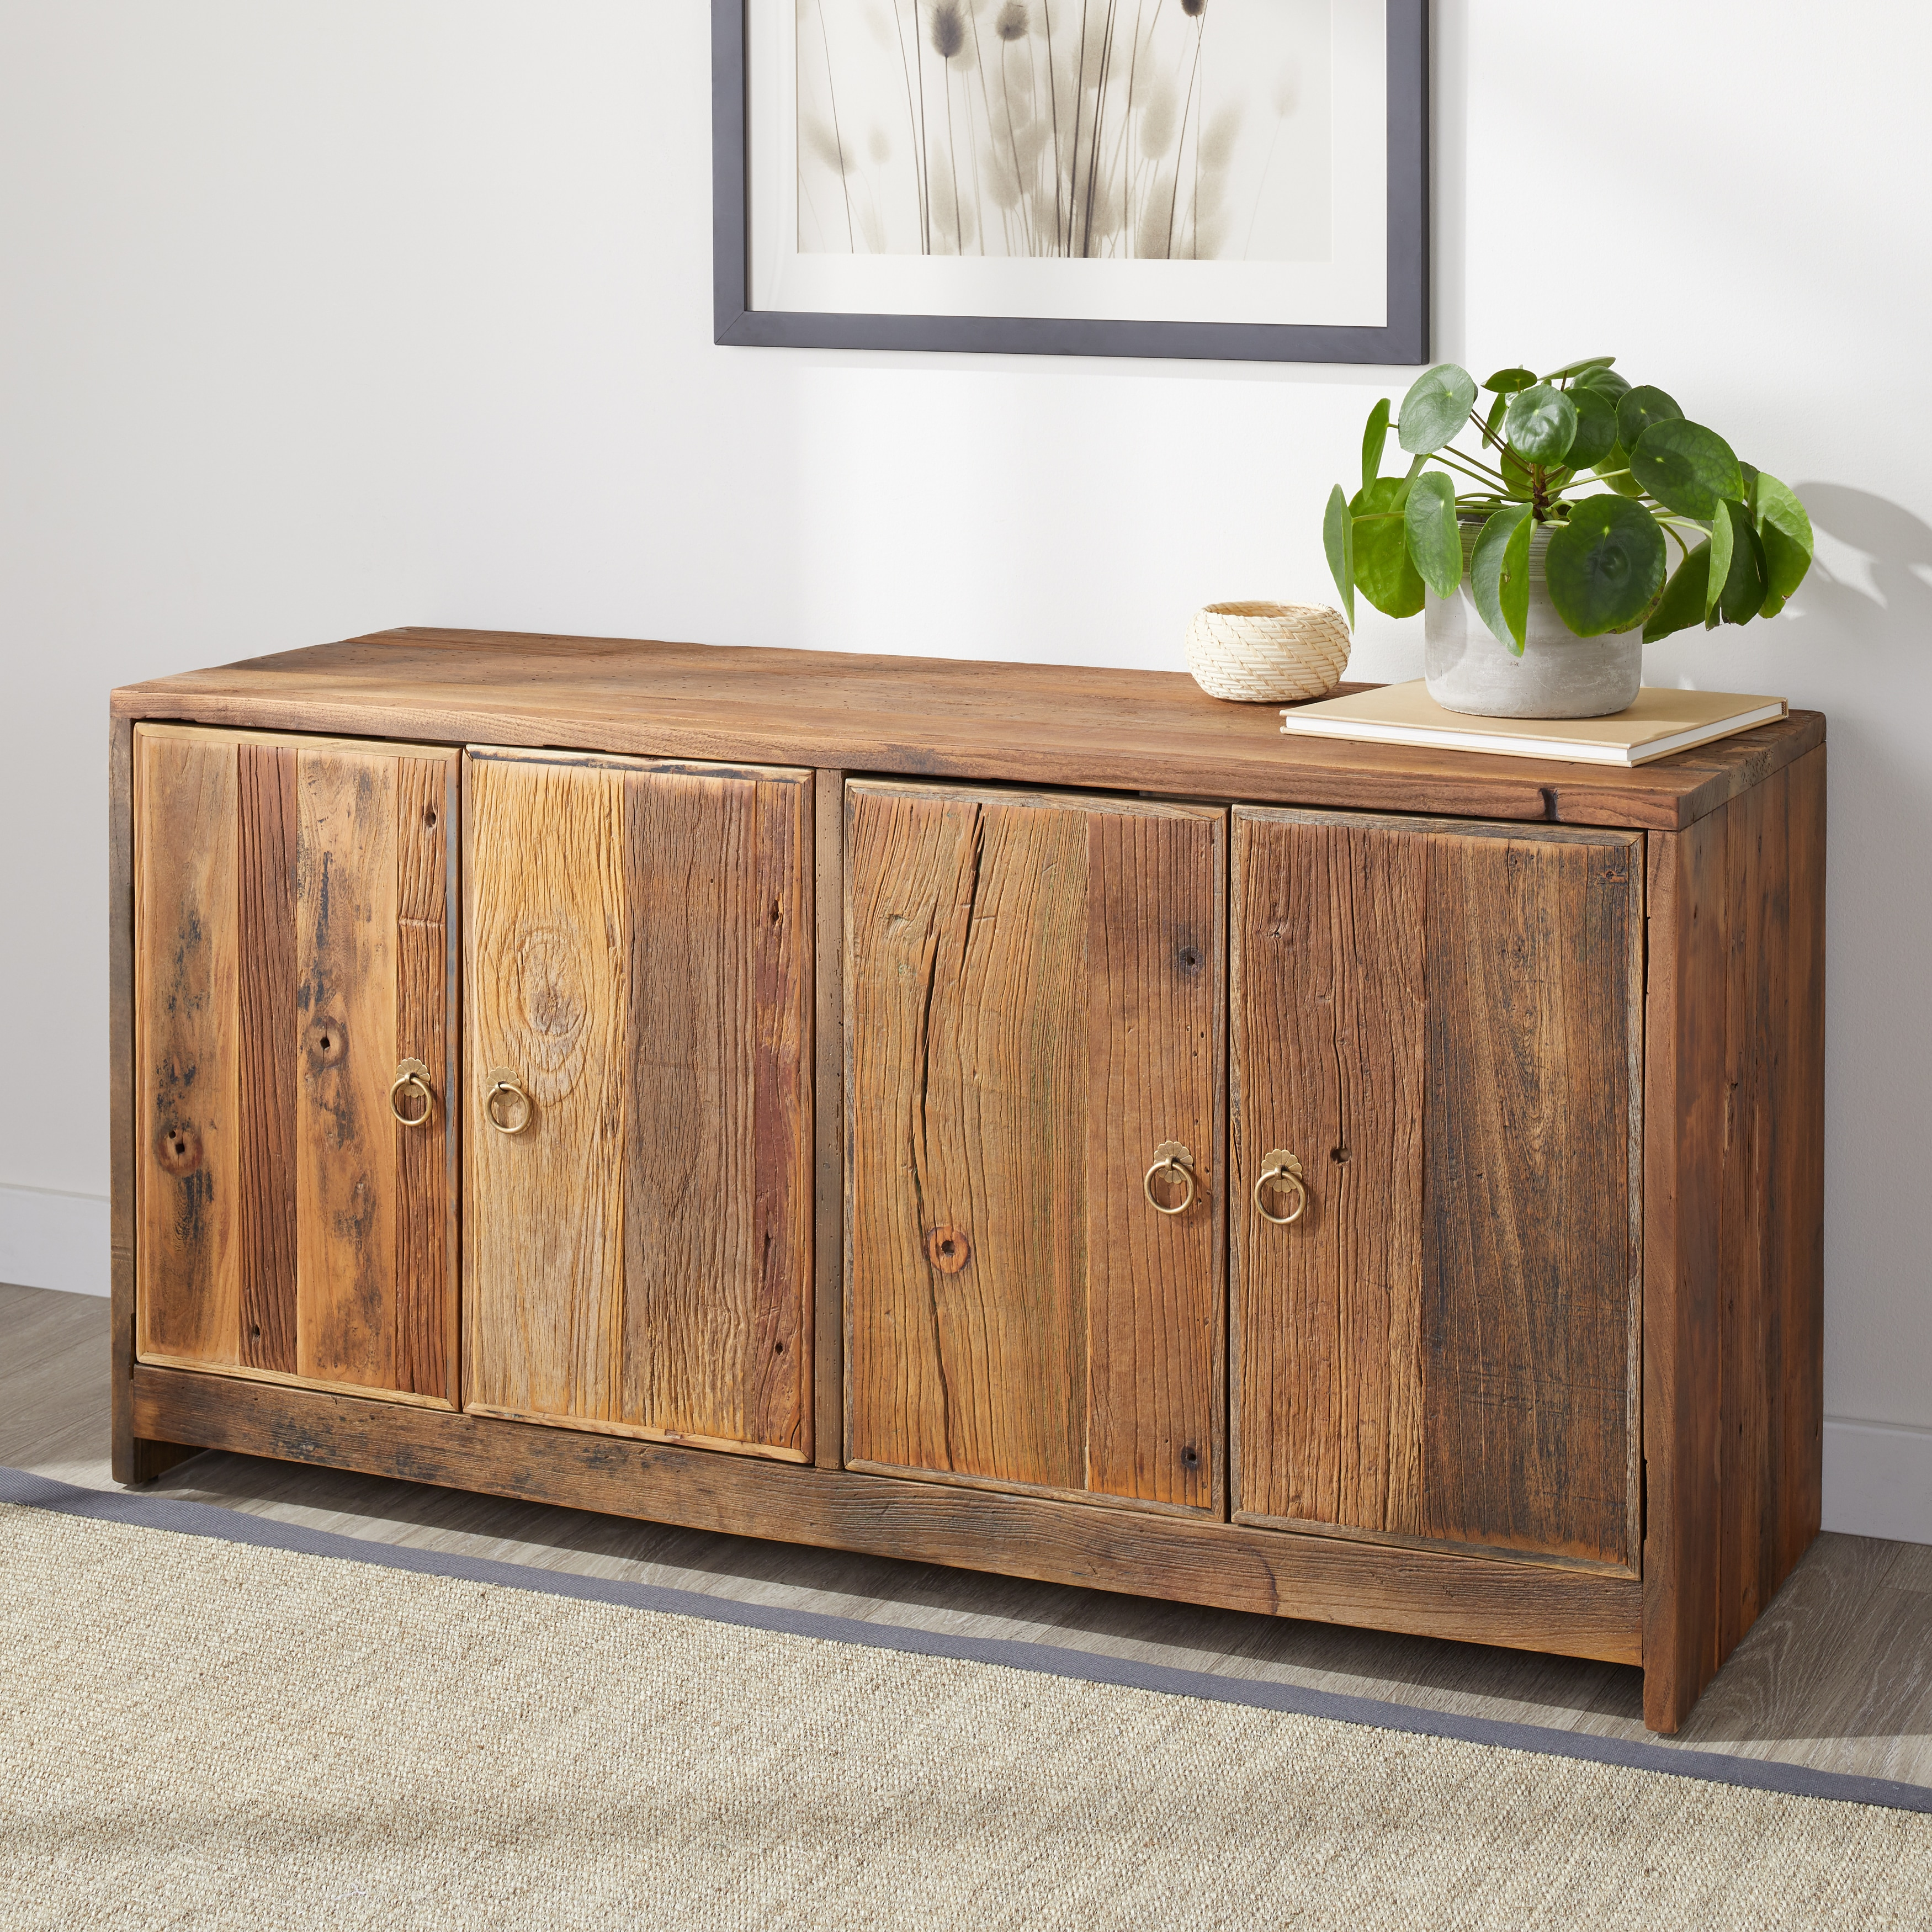 Shop Reclaimed Rustic Sofa Table - Free Shipping Today - Overstock ...